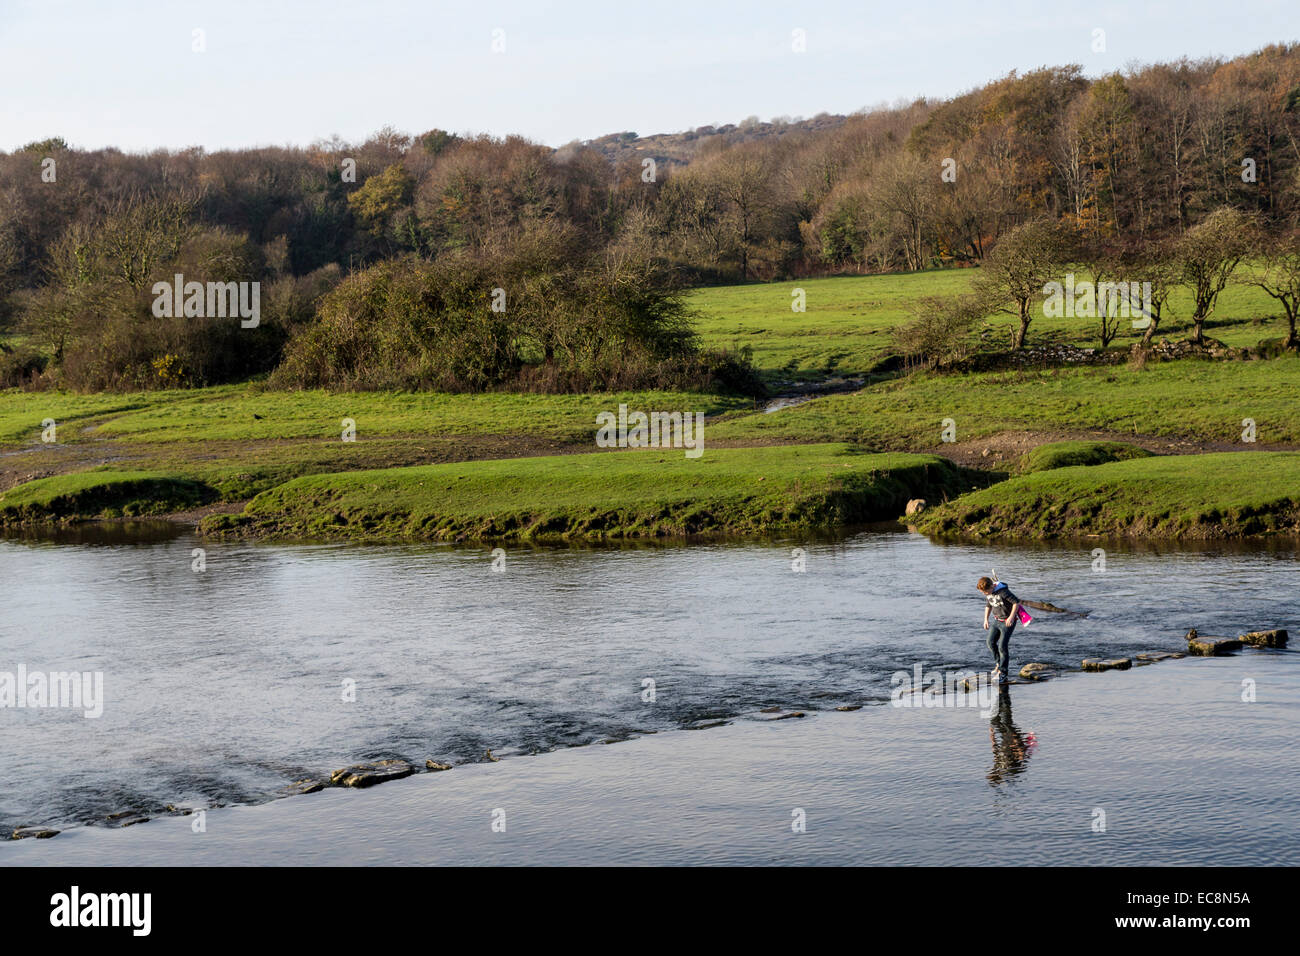 Boy crossing river on stepping stones, Ogmore, Wales, UK - Stock Image